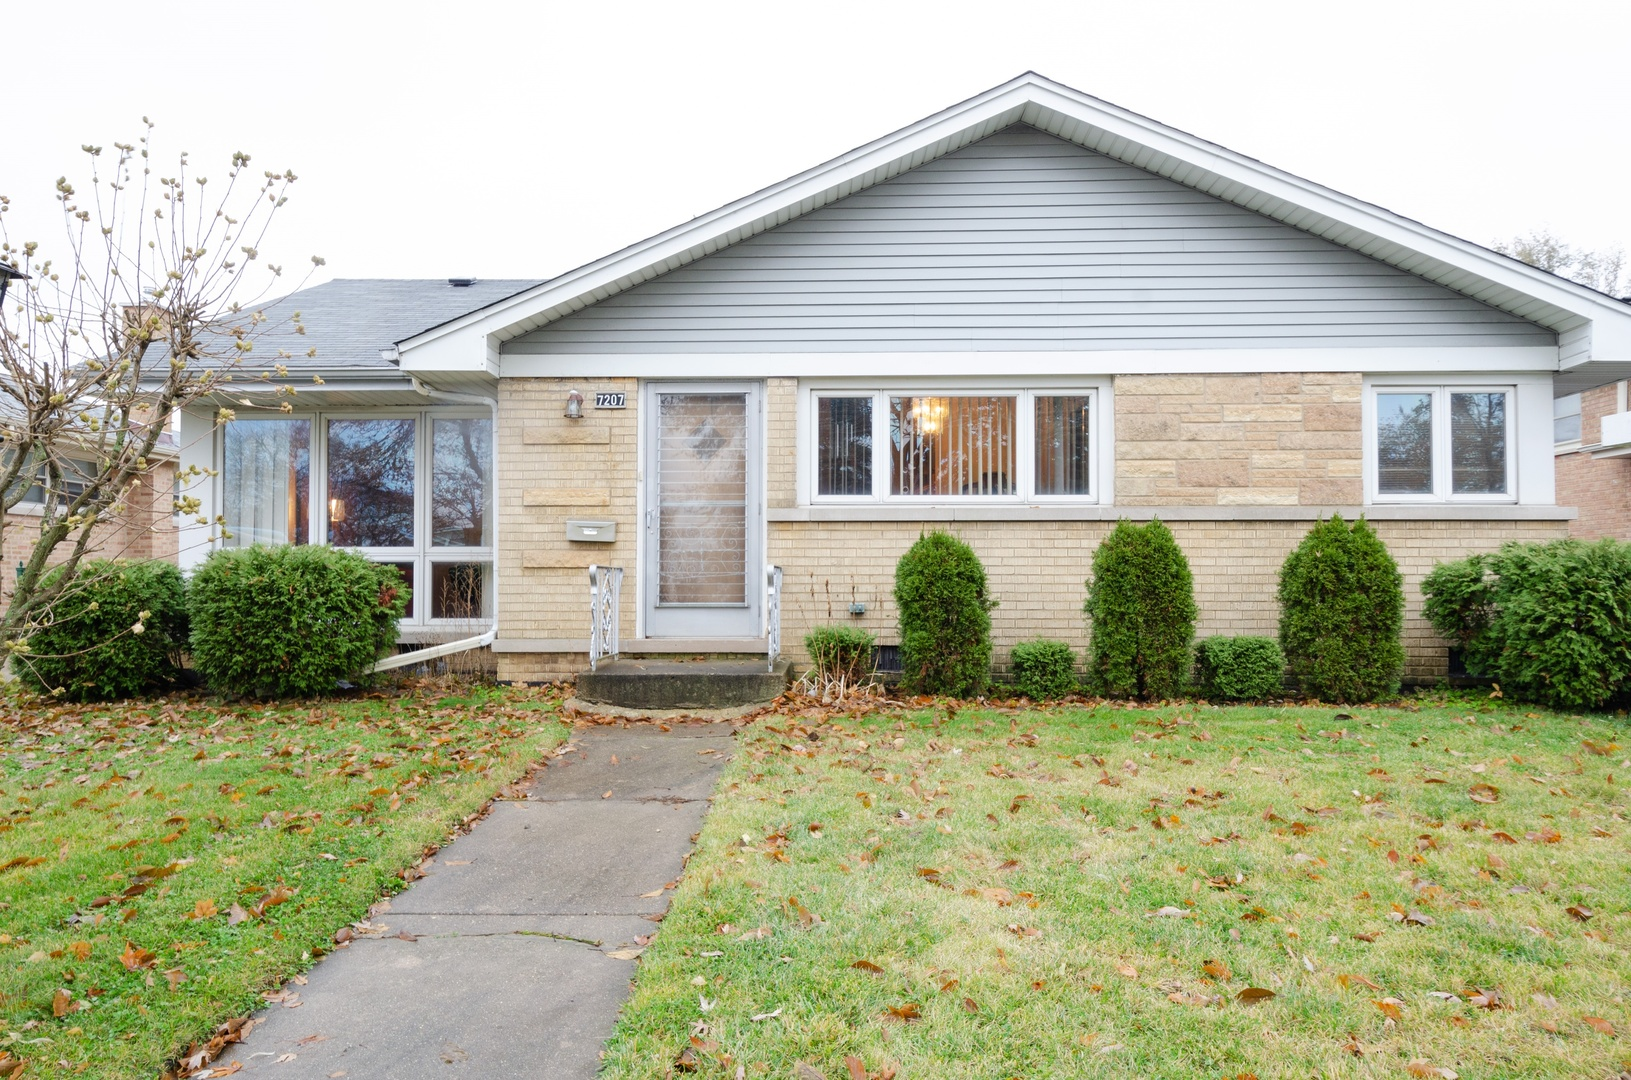 7207 West Conrad Avenue 60714 - One of Niles Homes for Sale